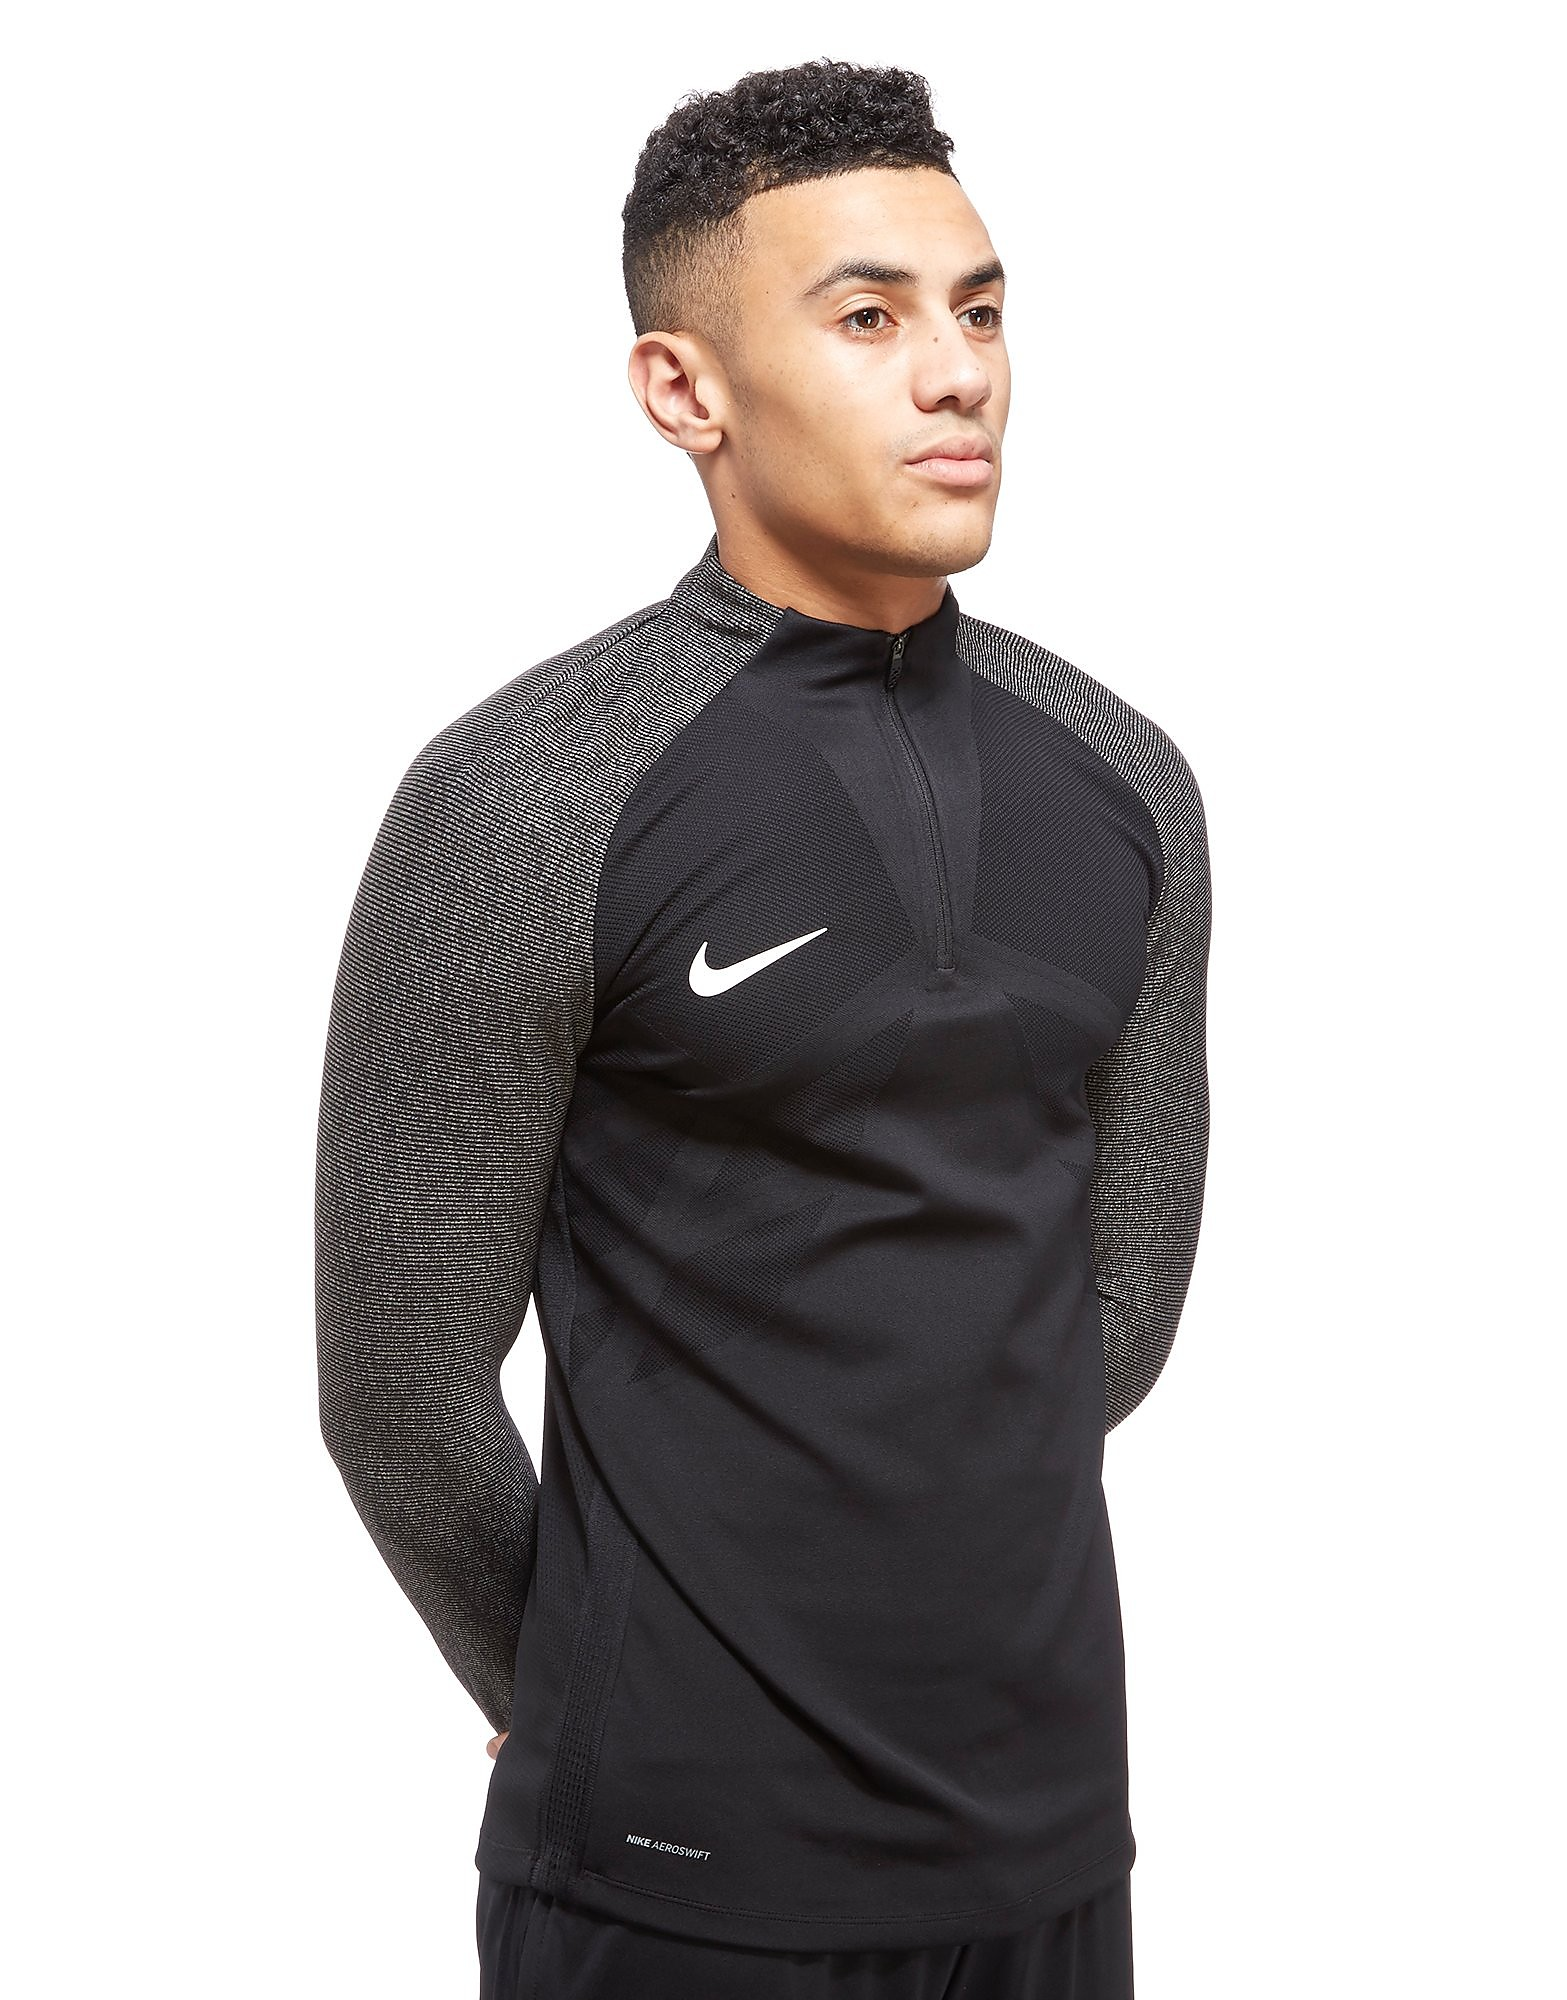 Nike Aeroswift Strike Drill Football Maglia Sportiva